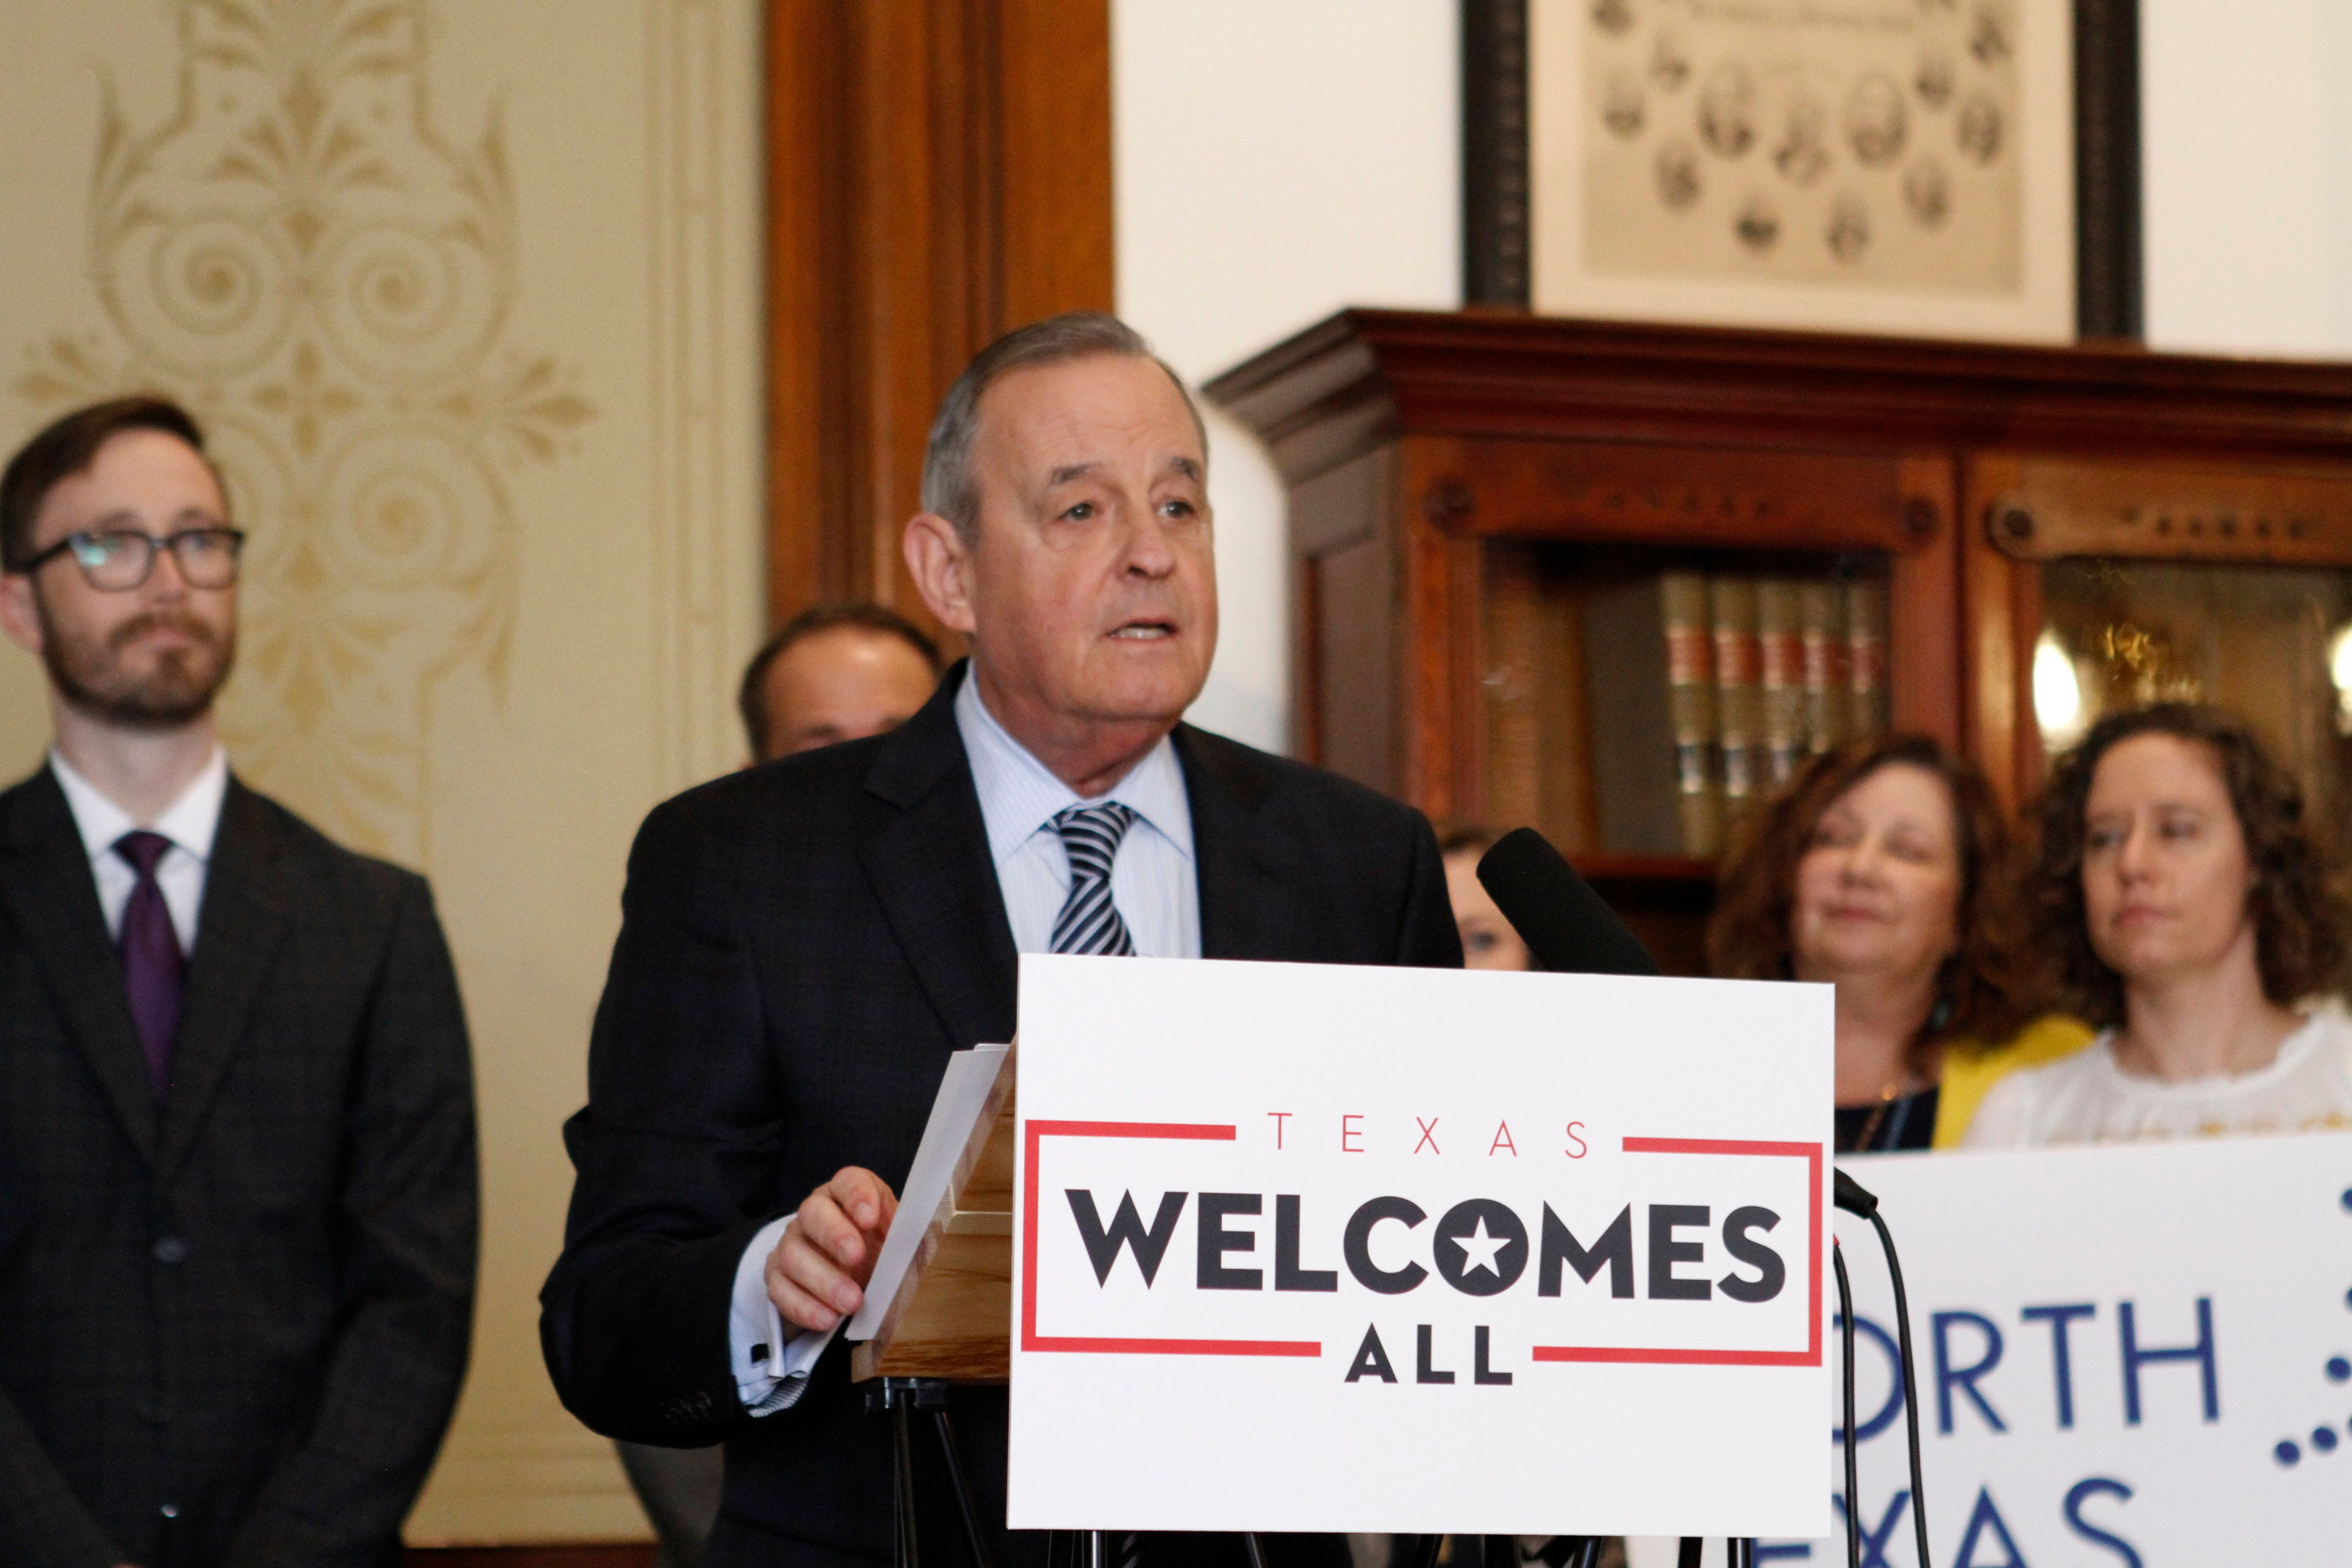 John Graham, the president and CEO of American Society of Association Executives, speaks out against a range of Texas bills corporate giants and other businesses are calling discriminatory during a press conference at the Capitol in Austin, Texas, Wednesday, March 27, 2019. (AP Photo/Clarice Silber)